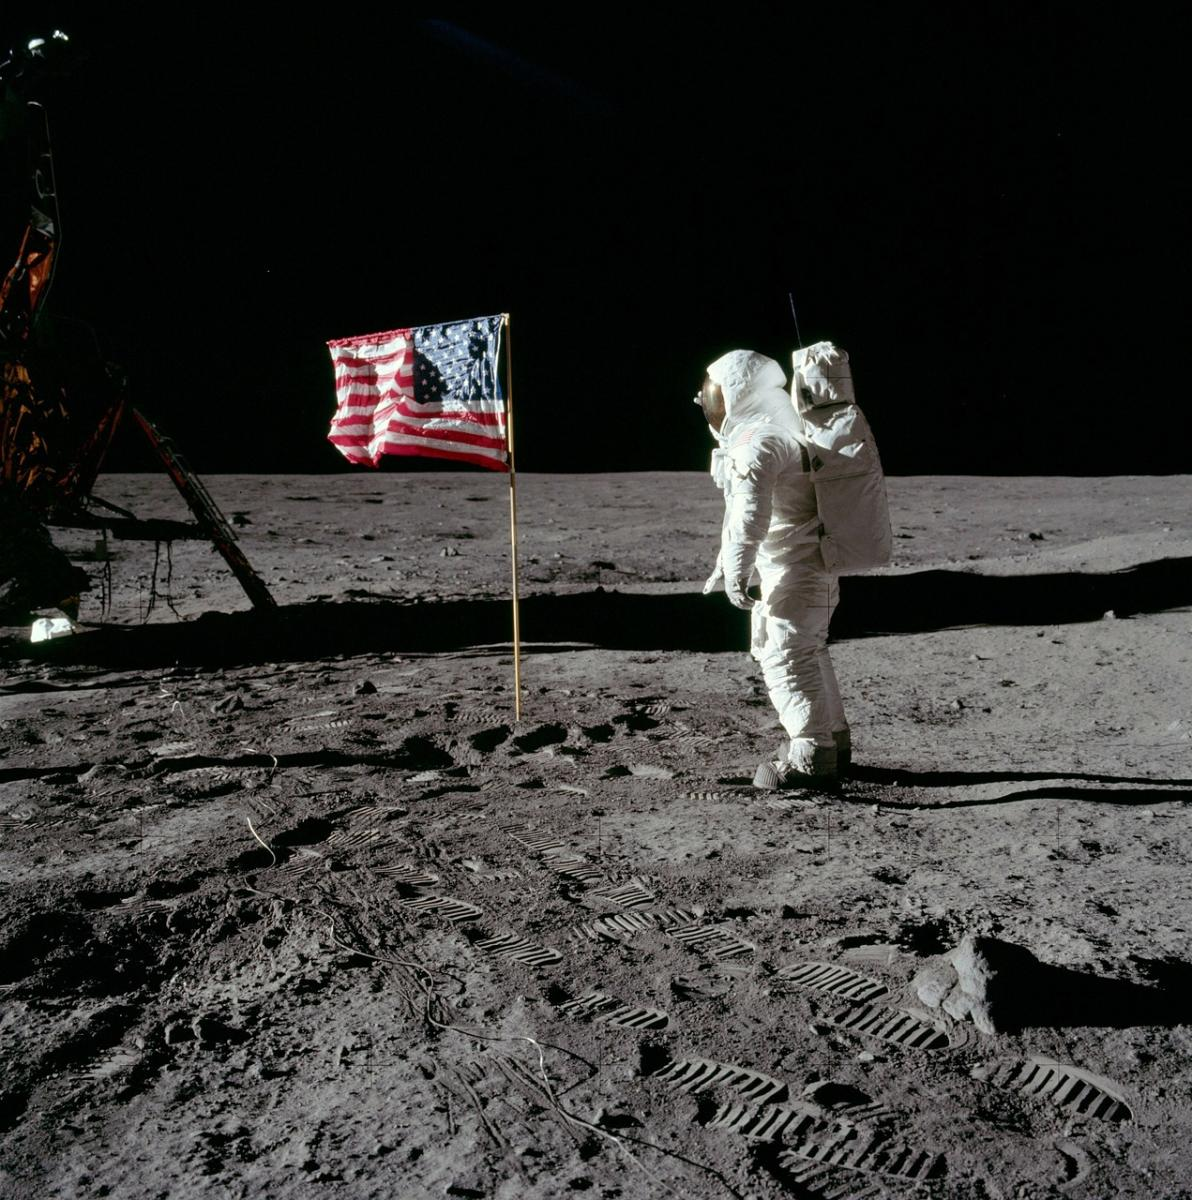 Moon Landing - Apollo 11